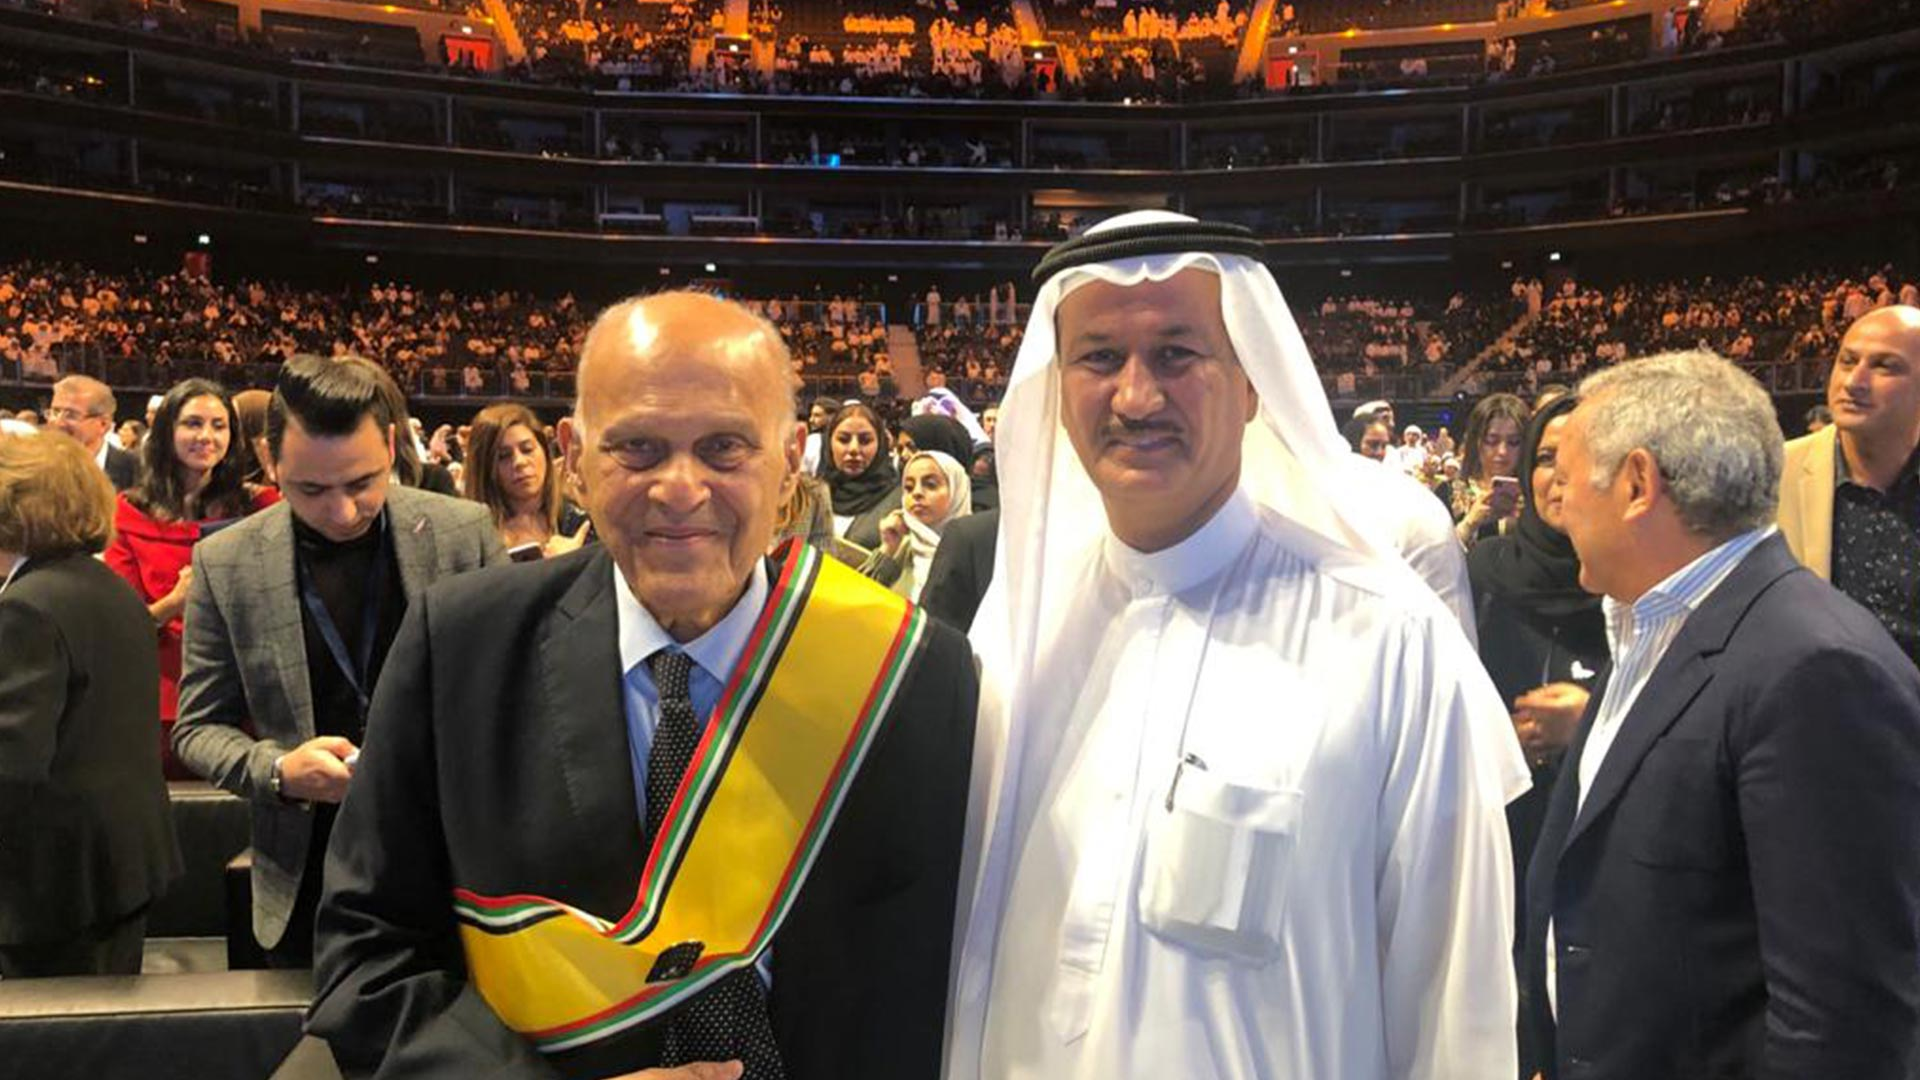 I was delighted to meet Dr Magdi Yacoub at the Arab Hope Makers ceremony